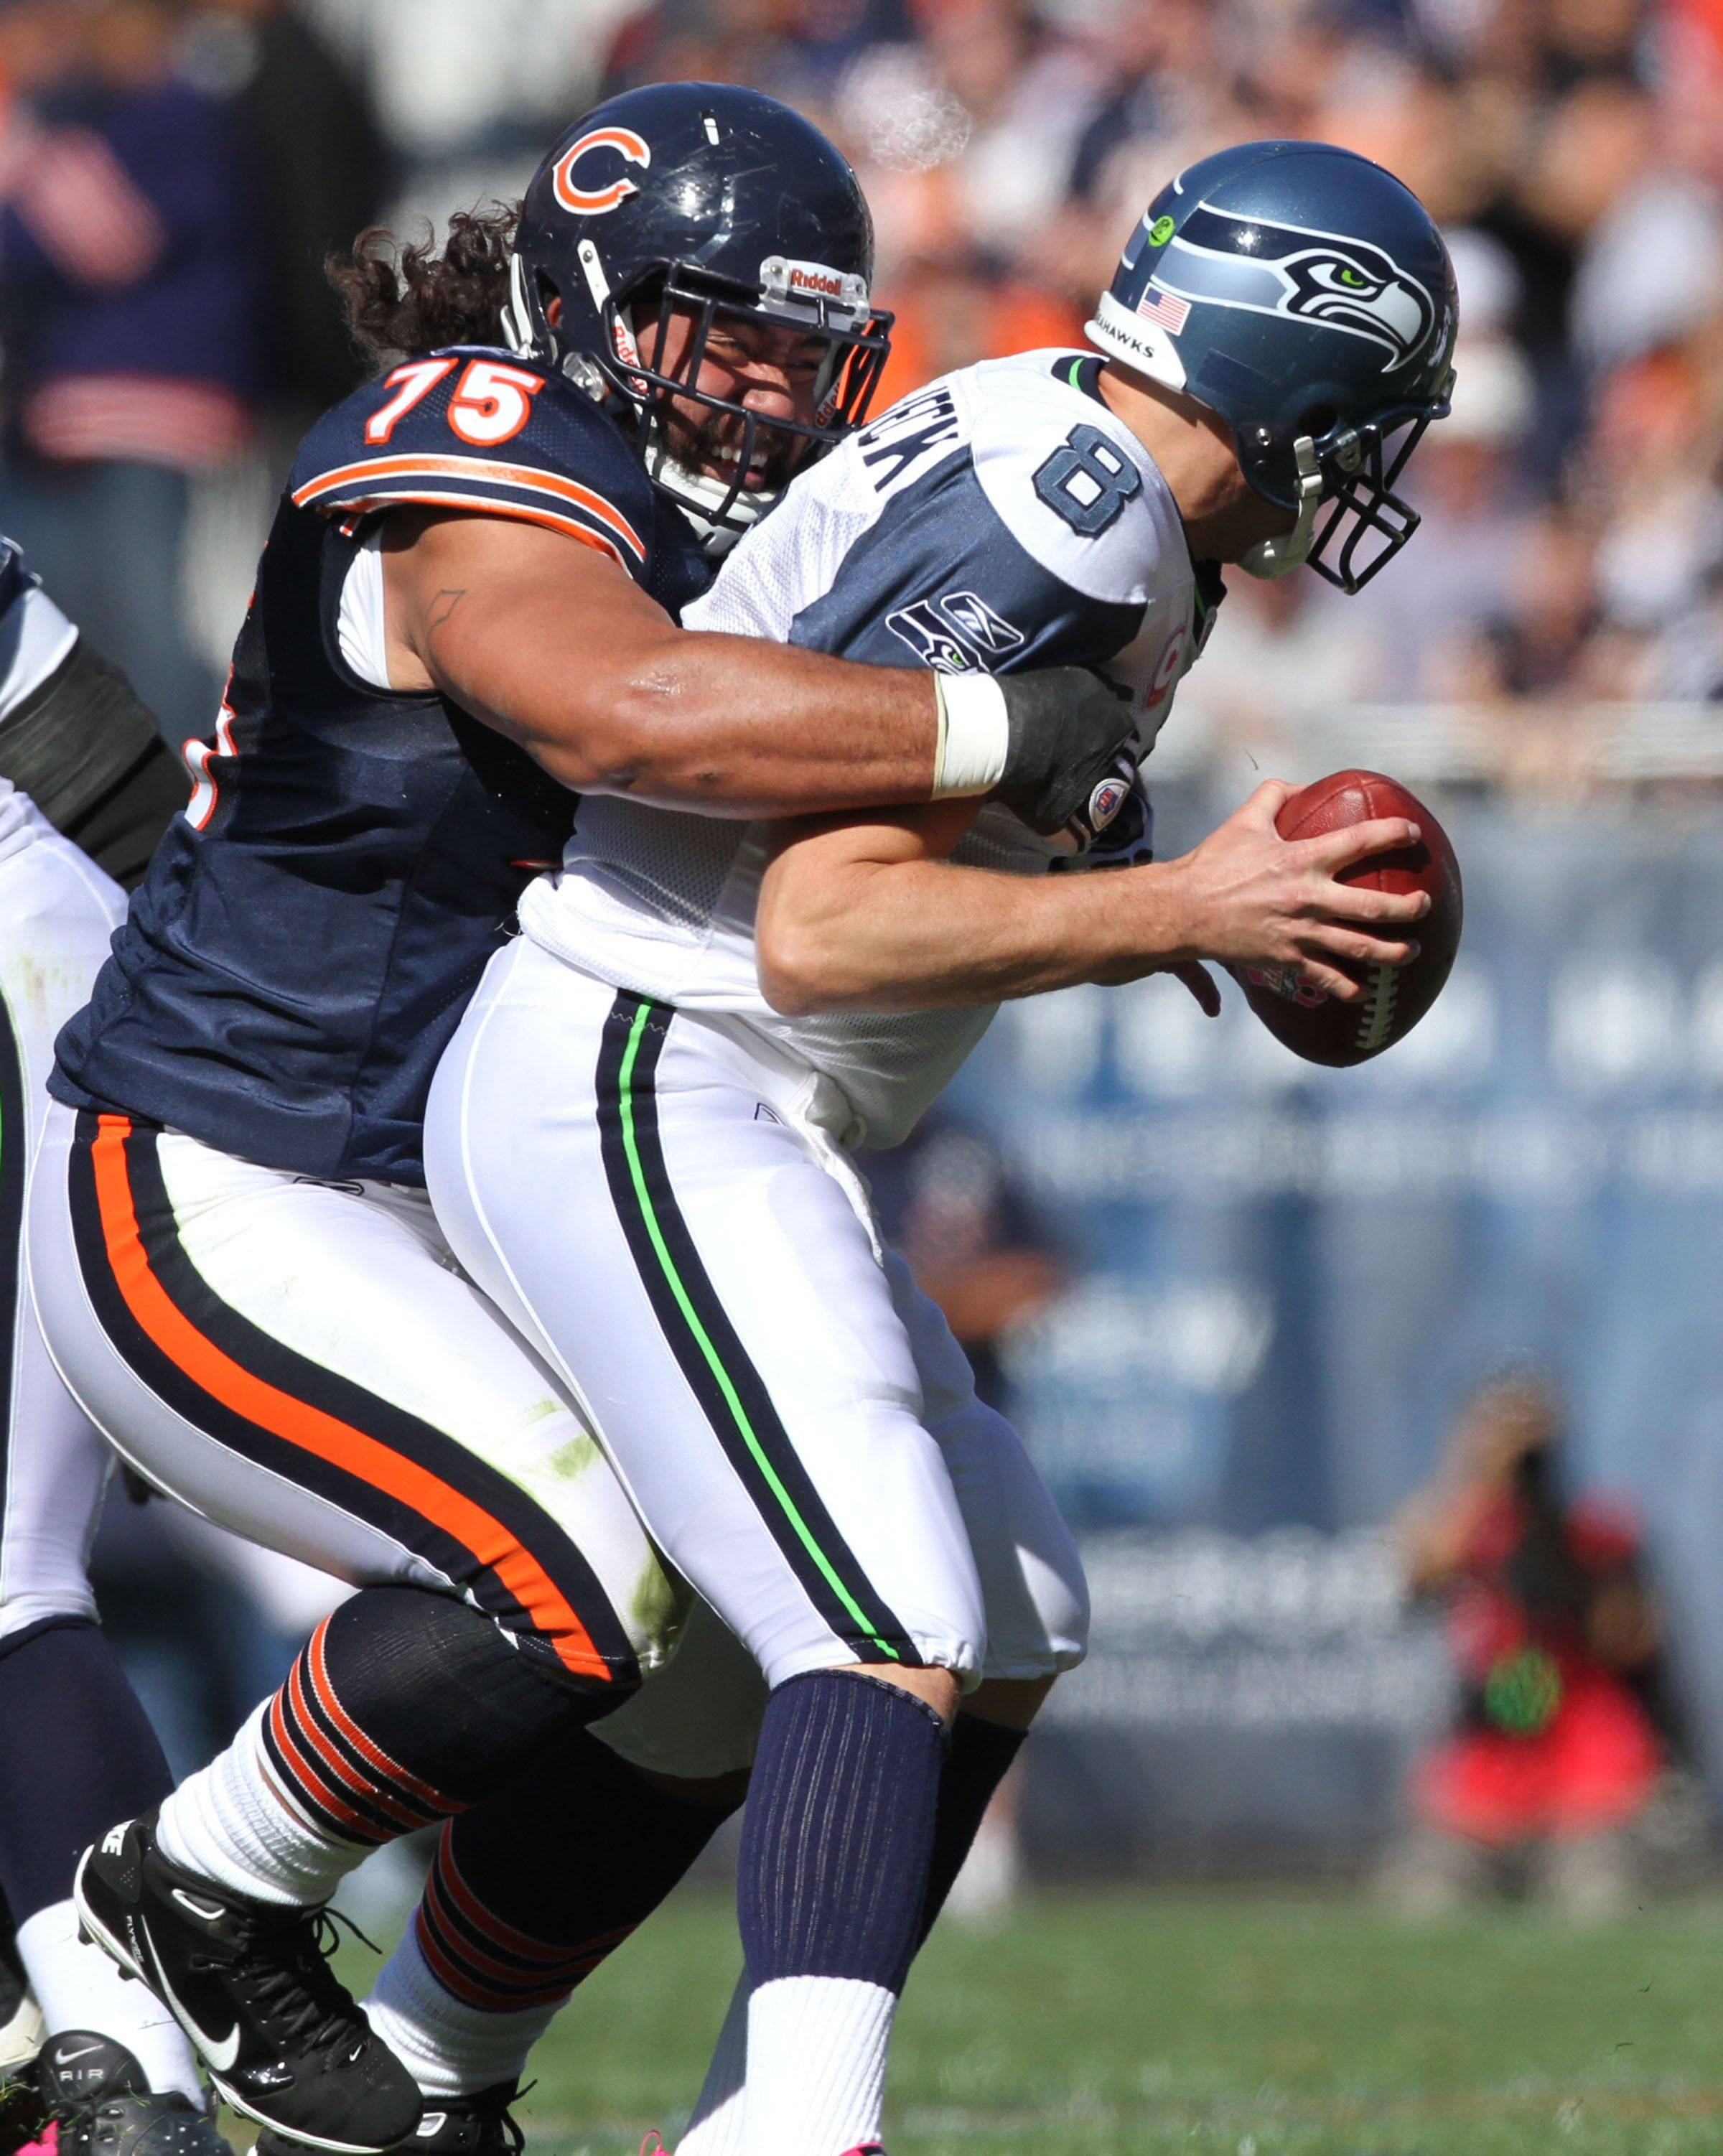 Bears' defensive tackle Matt Toeaina pulls down Seattle Seahawks' quarterback Matt Hasselbeck which was ruled an incomplete pass at Soldier Field.